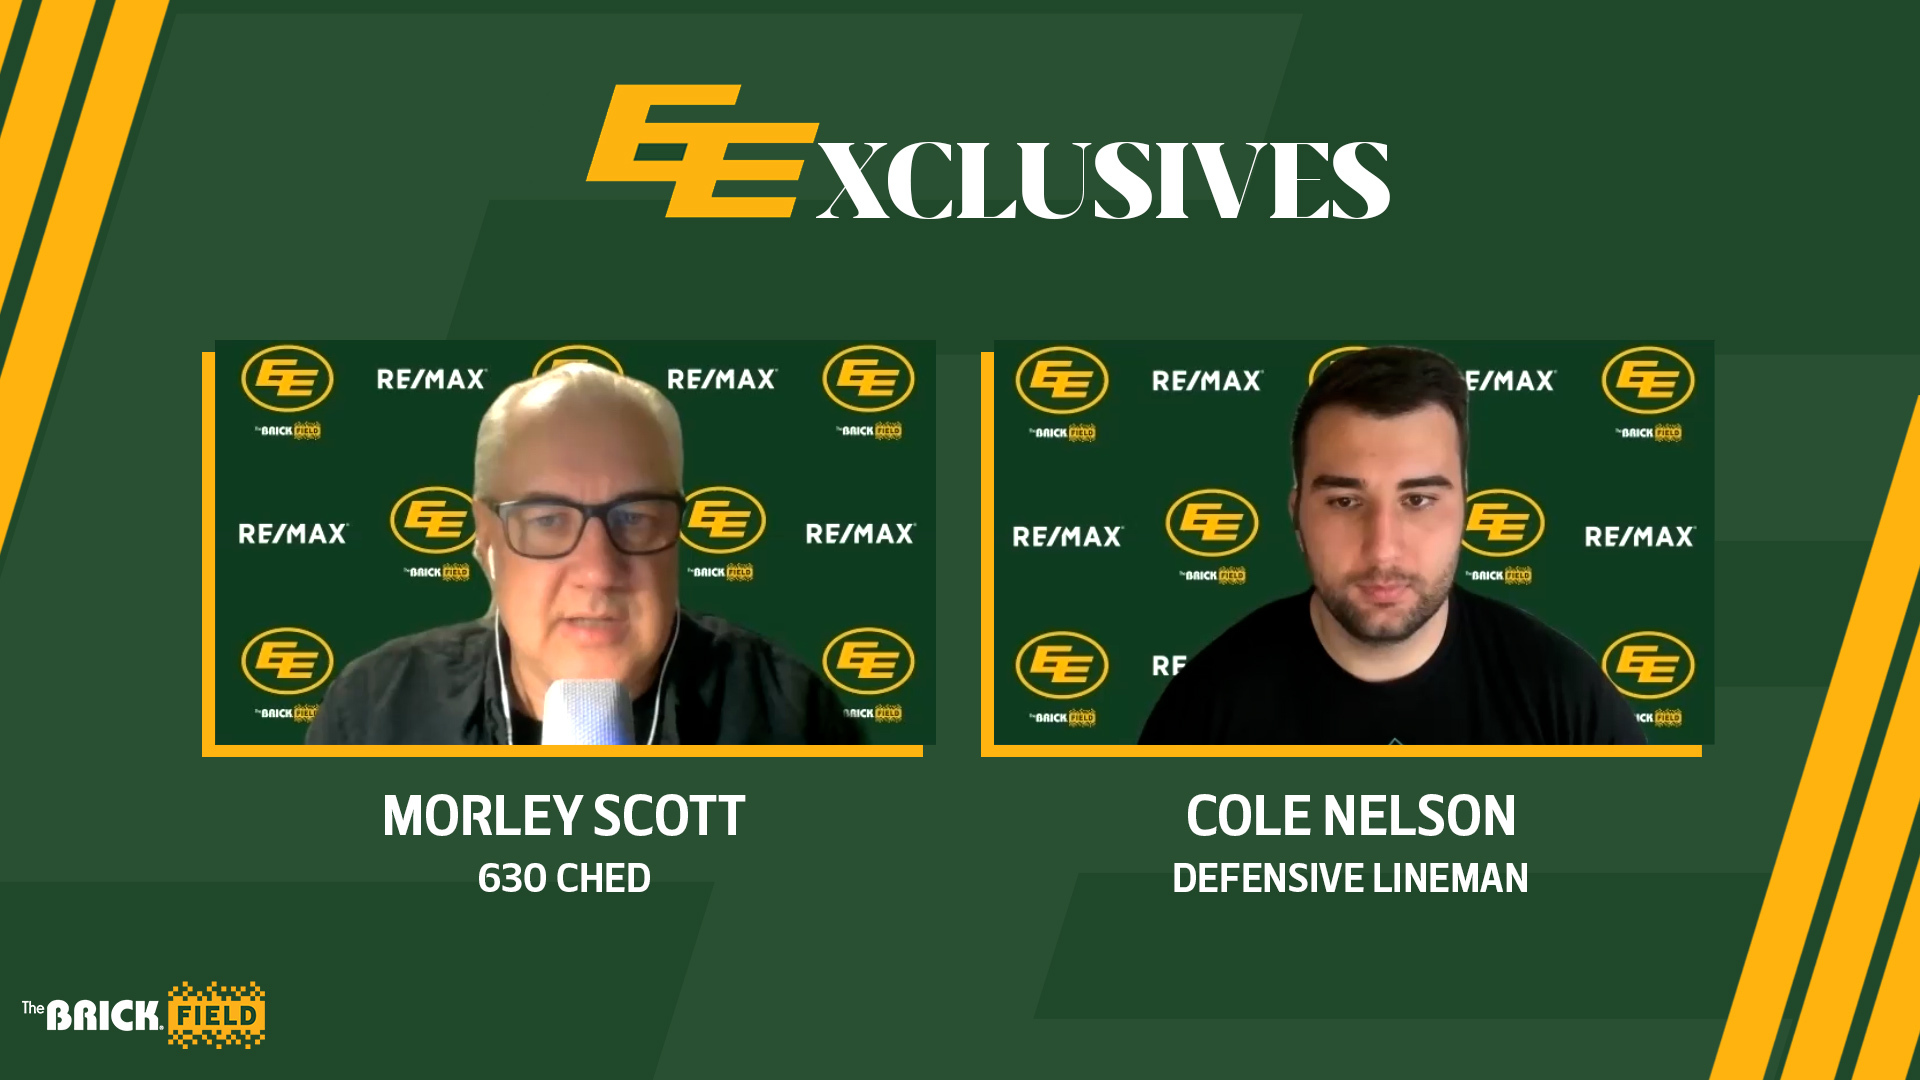 EE Exclusive: DL Cole Nelson